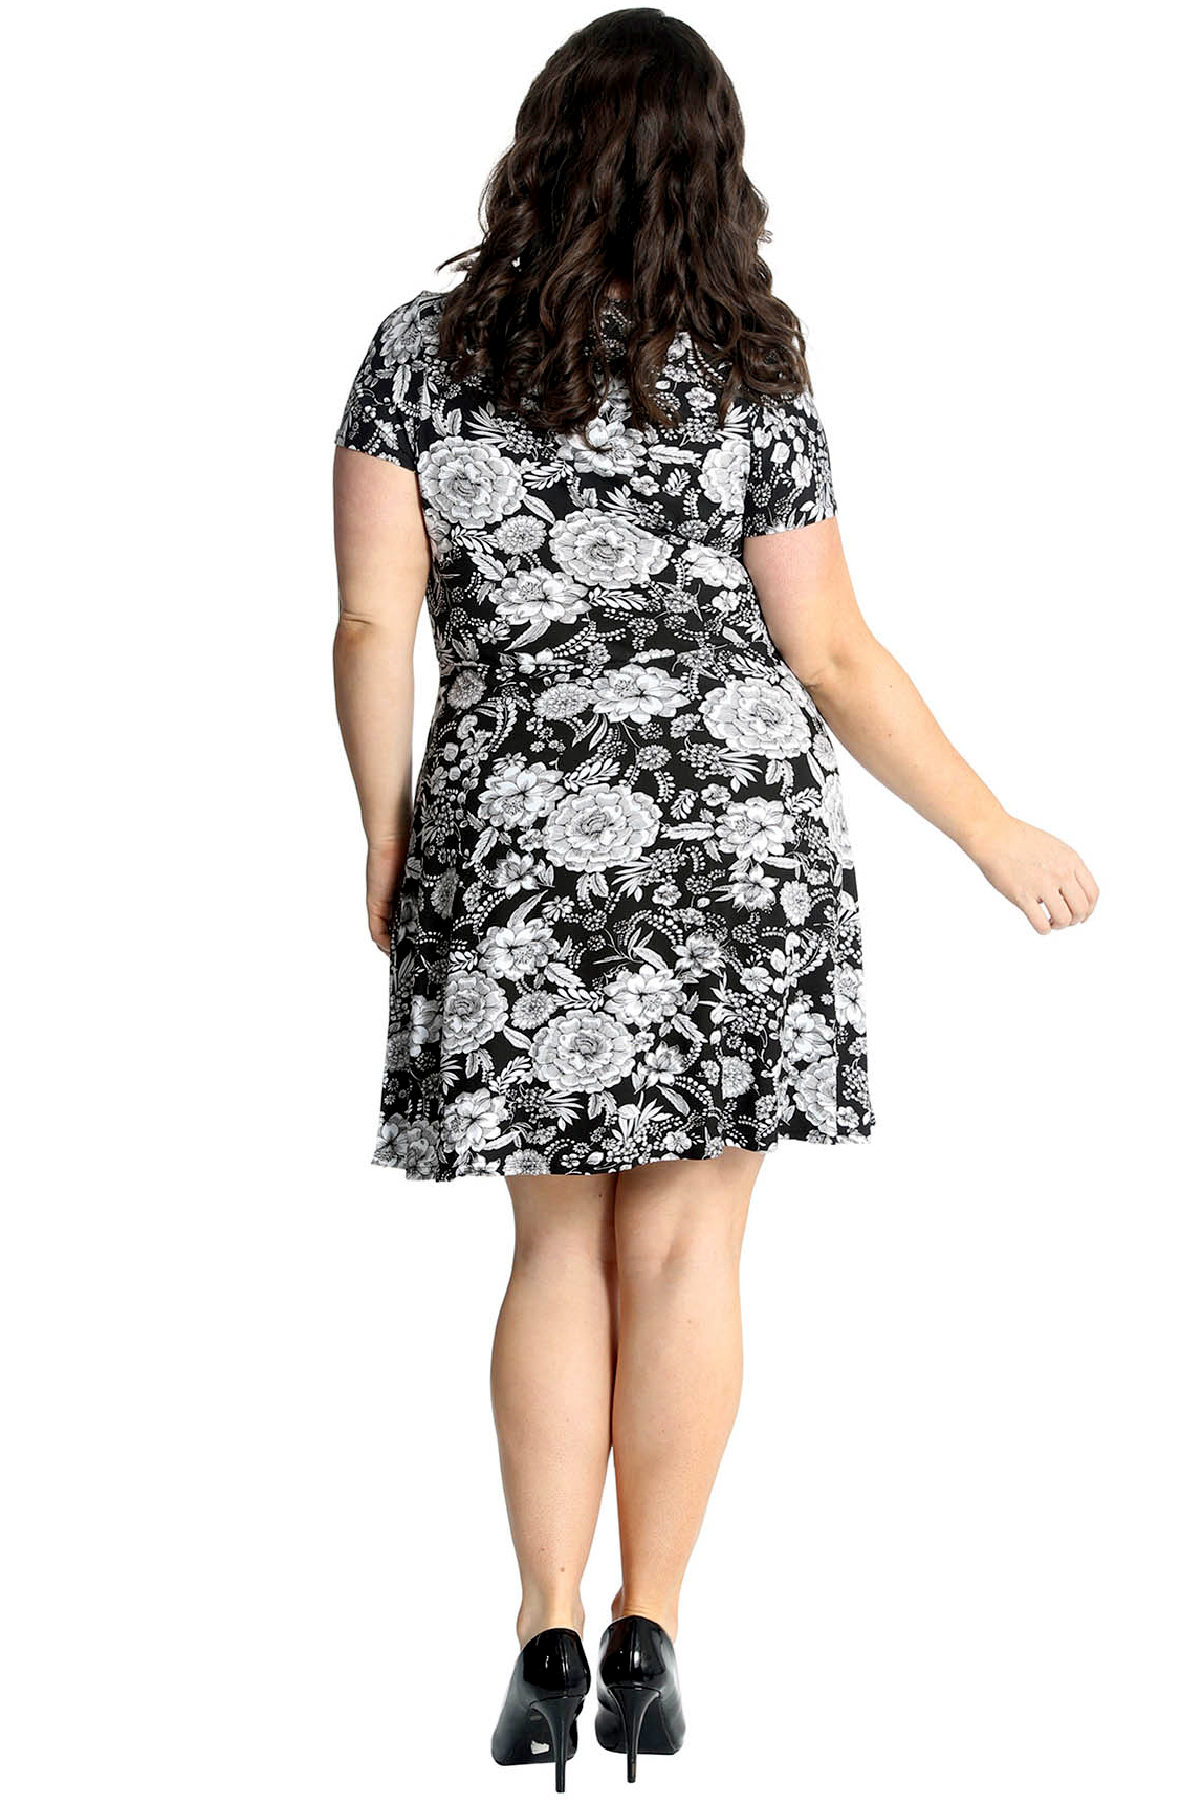 New Womens Floral Plus Size Dress Ladies Crossover Skater Style Summer Nouvelle